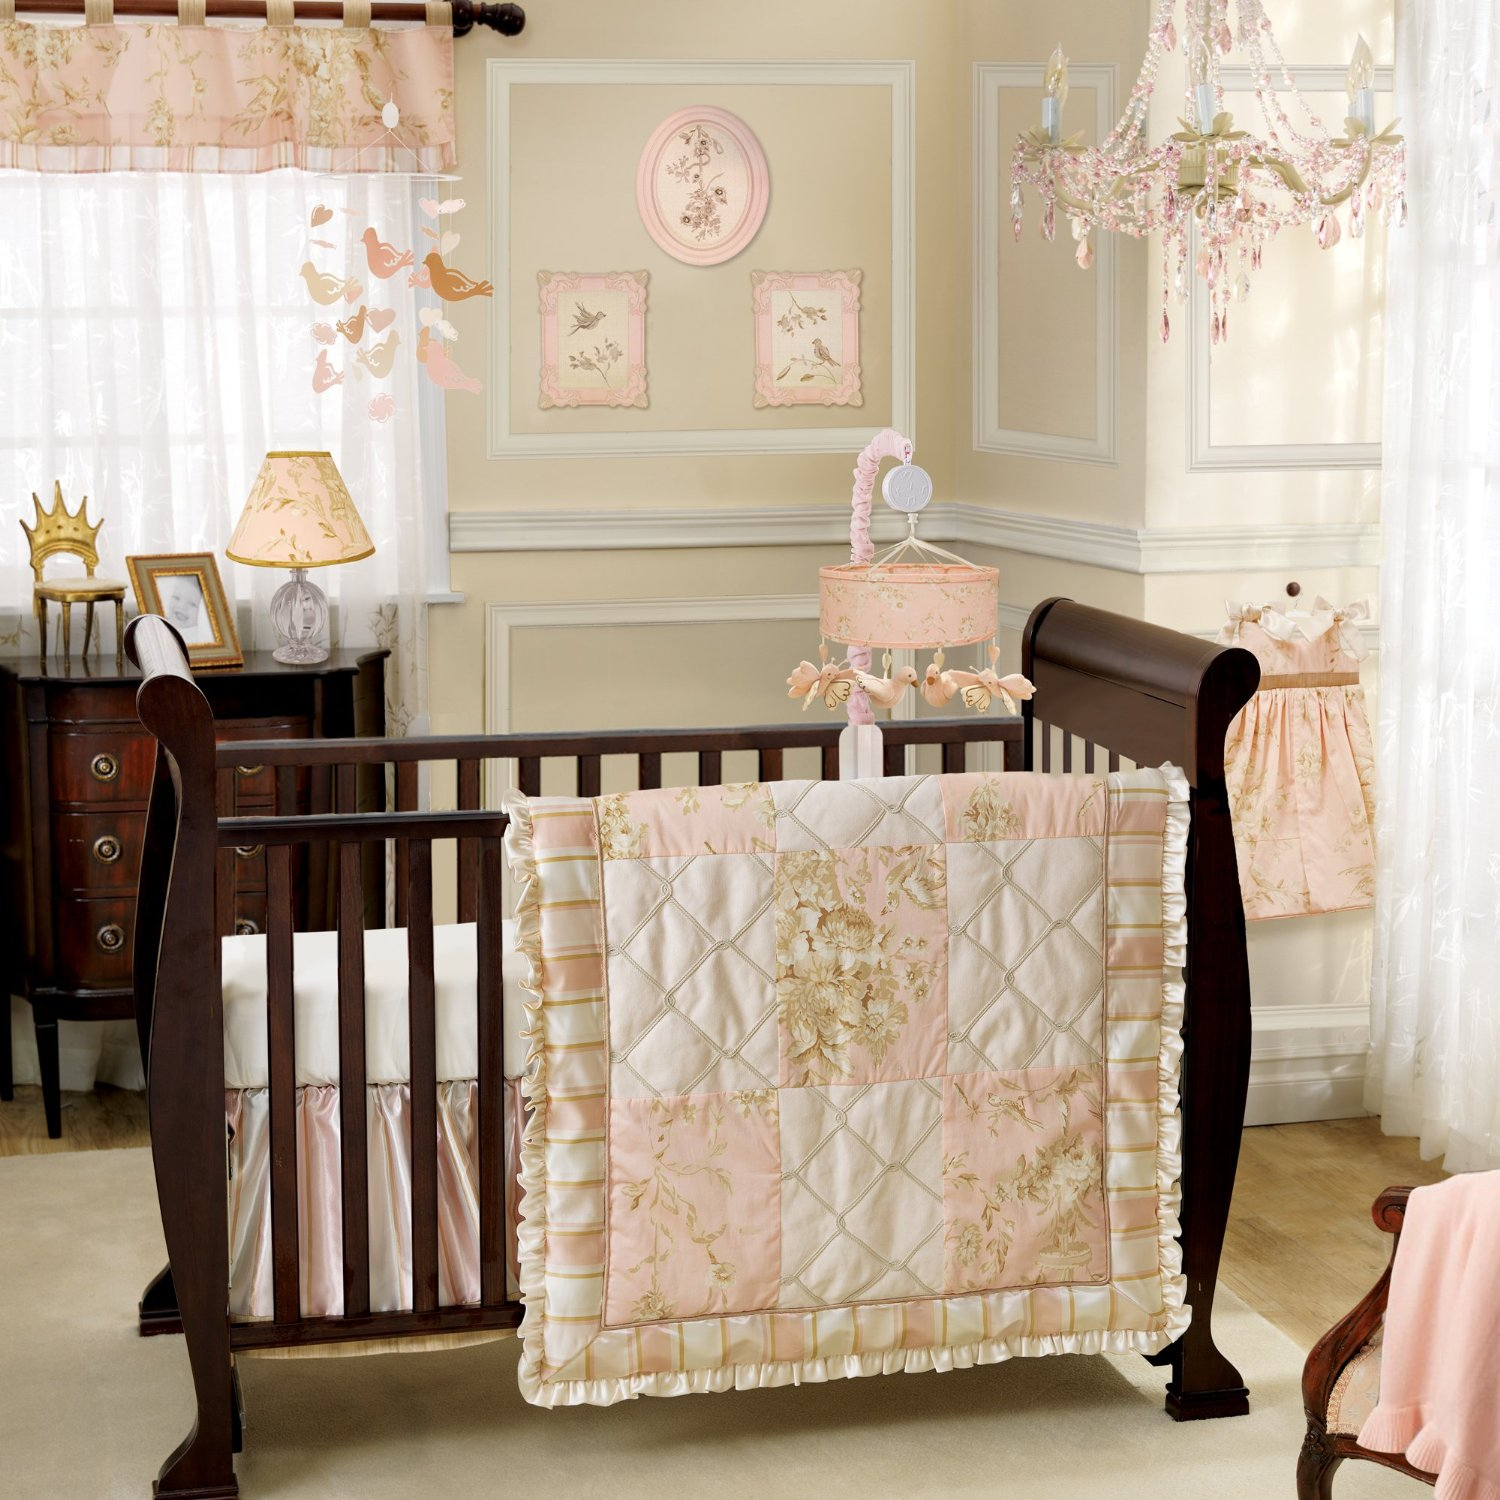 A Little Princess Nursery Design: Lambs And Ivy Little Princess Nursery Decor And Bedding